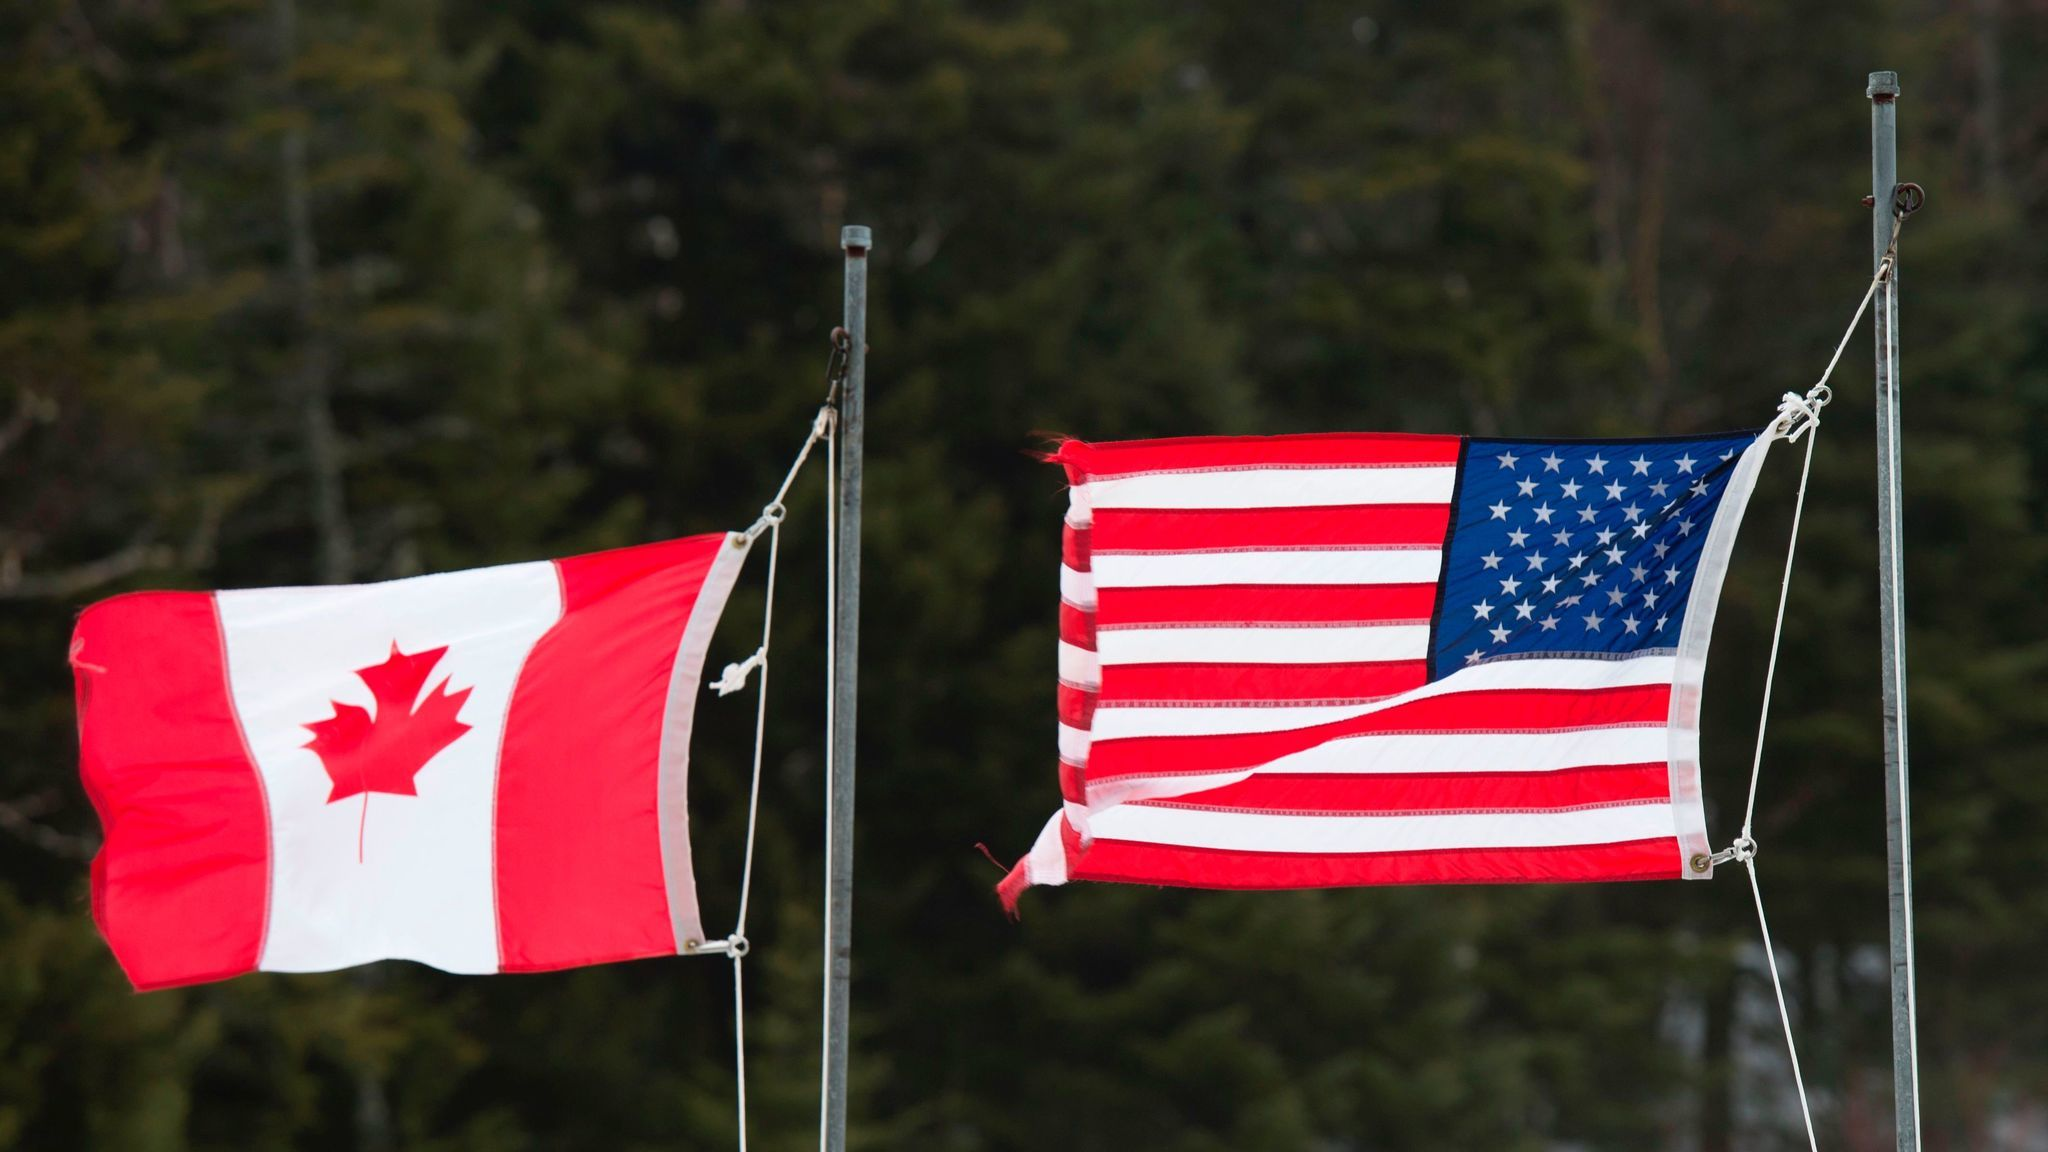 The U.S. and Canada share more than 5,000 miles of land and water boundaries.